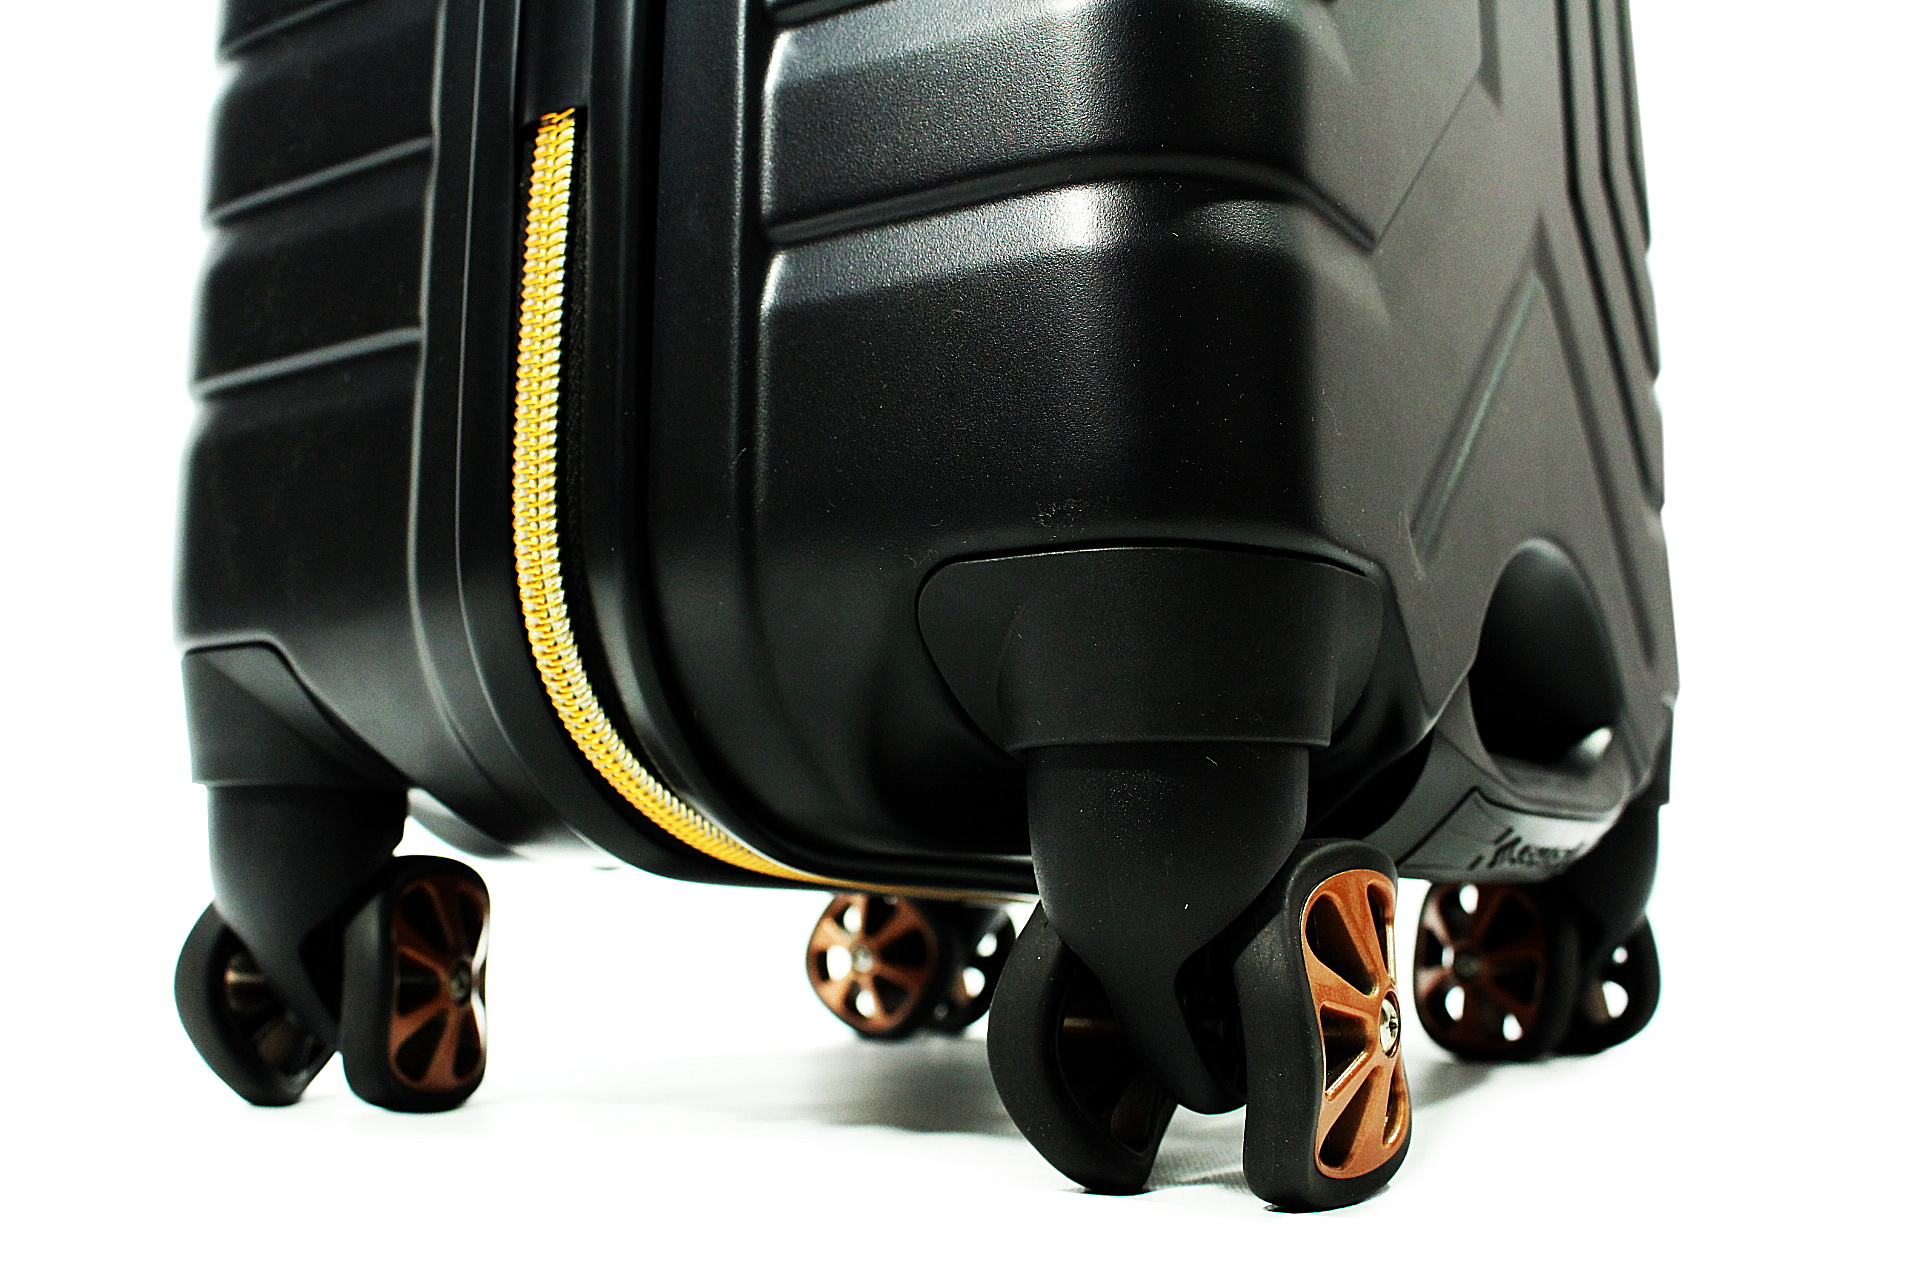 Carry-On Luggage by Shark Wheel (Black/Copper)